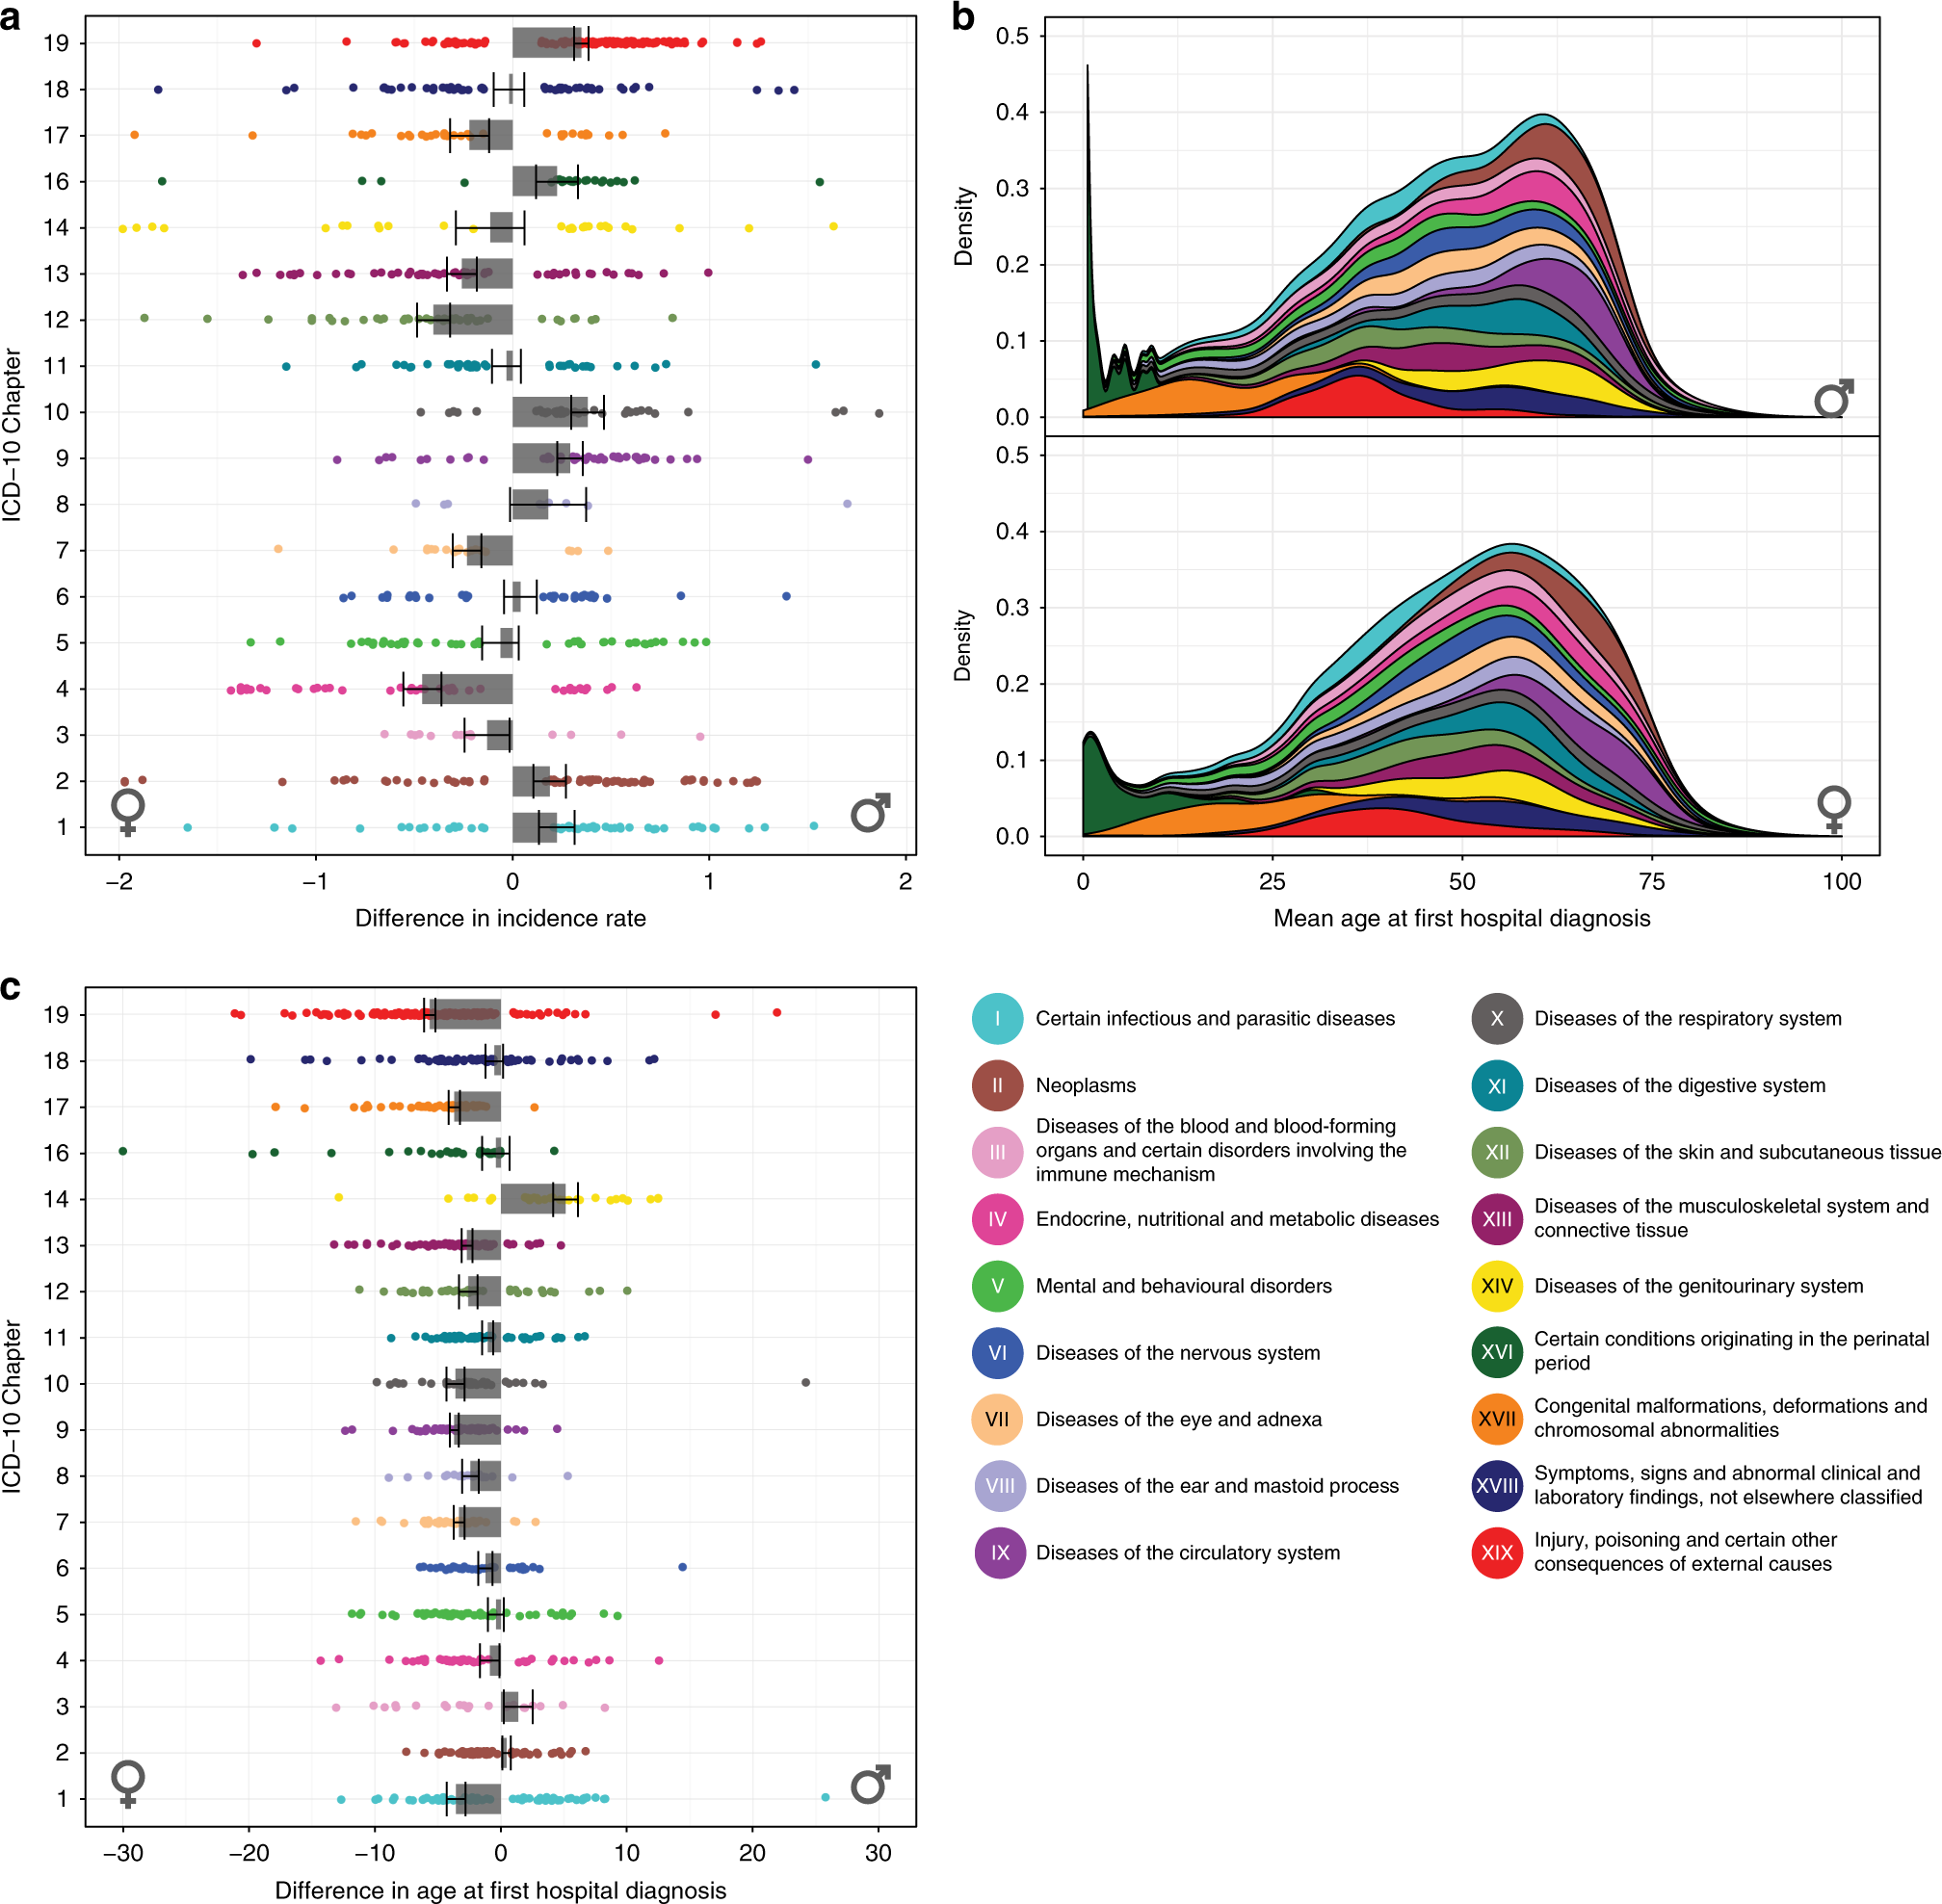 Population-wide analysis of differences in disease progression